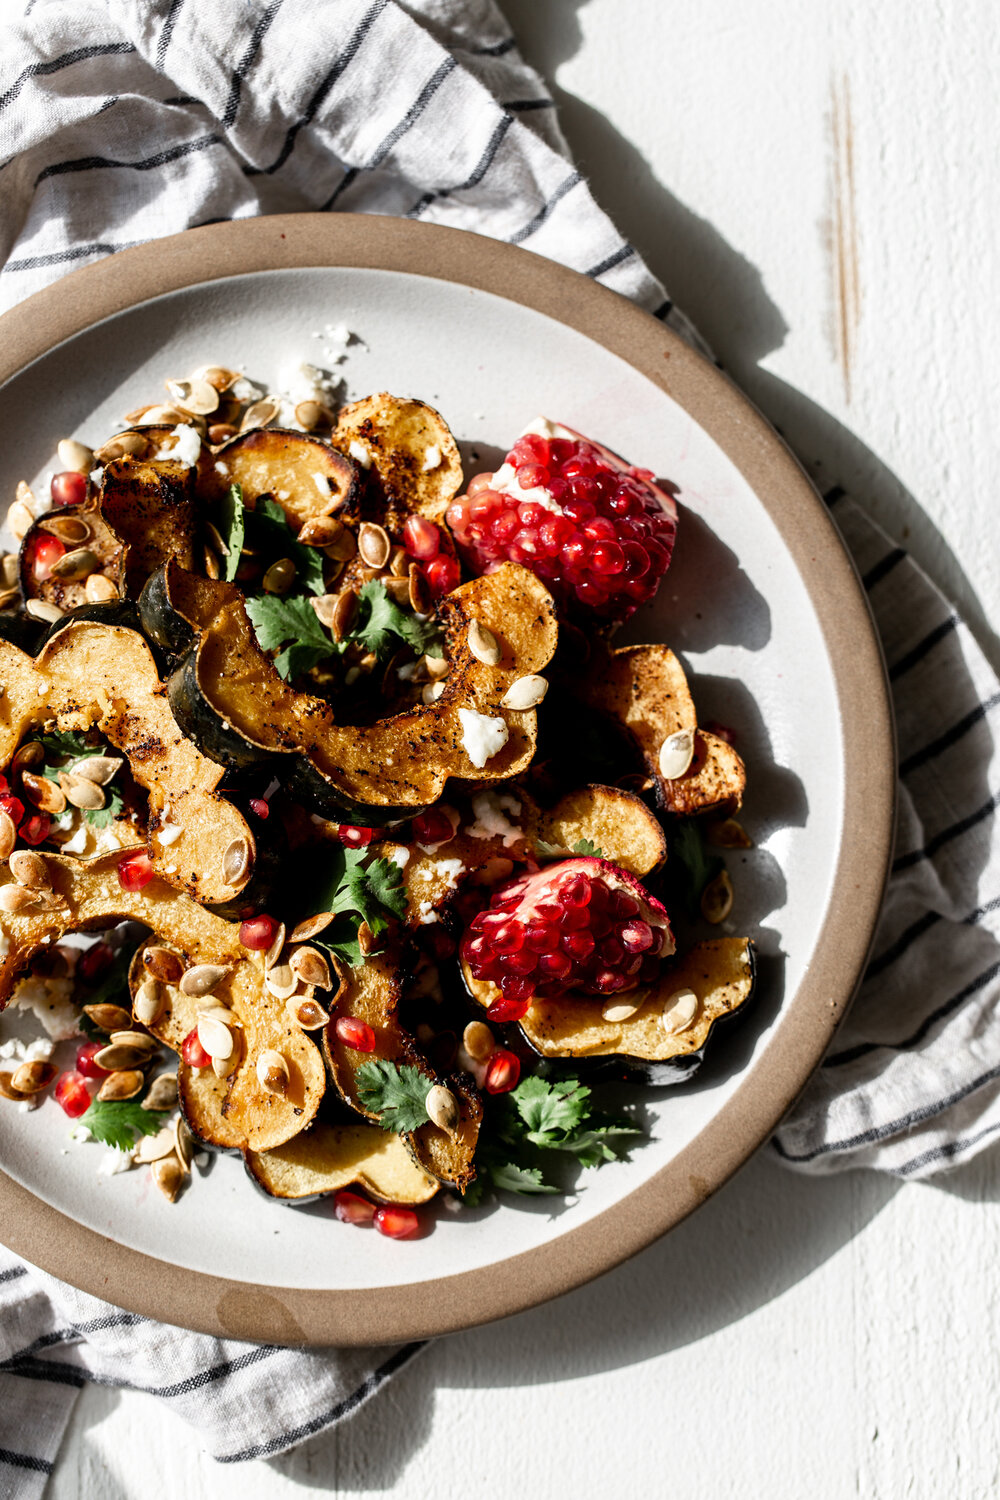 Ancho Chili Roasted Acorn Squash with Queso Fresco harsh light